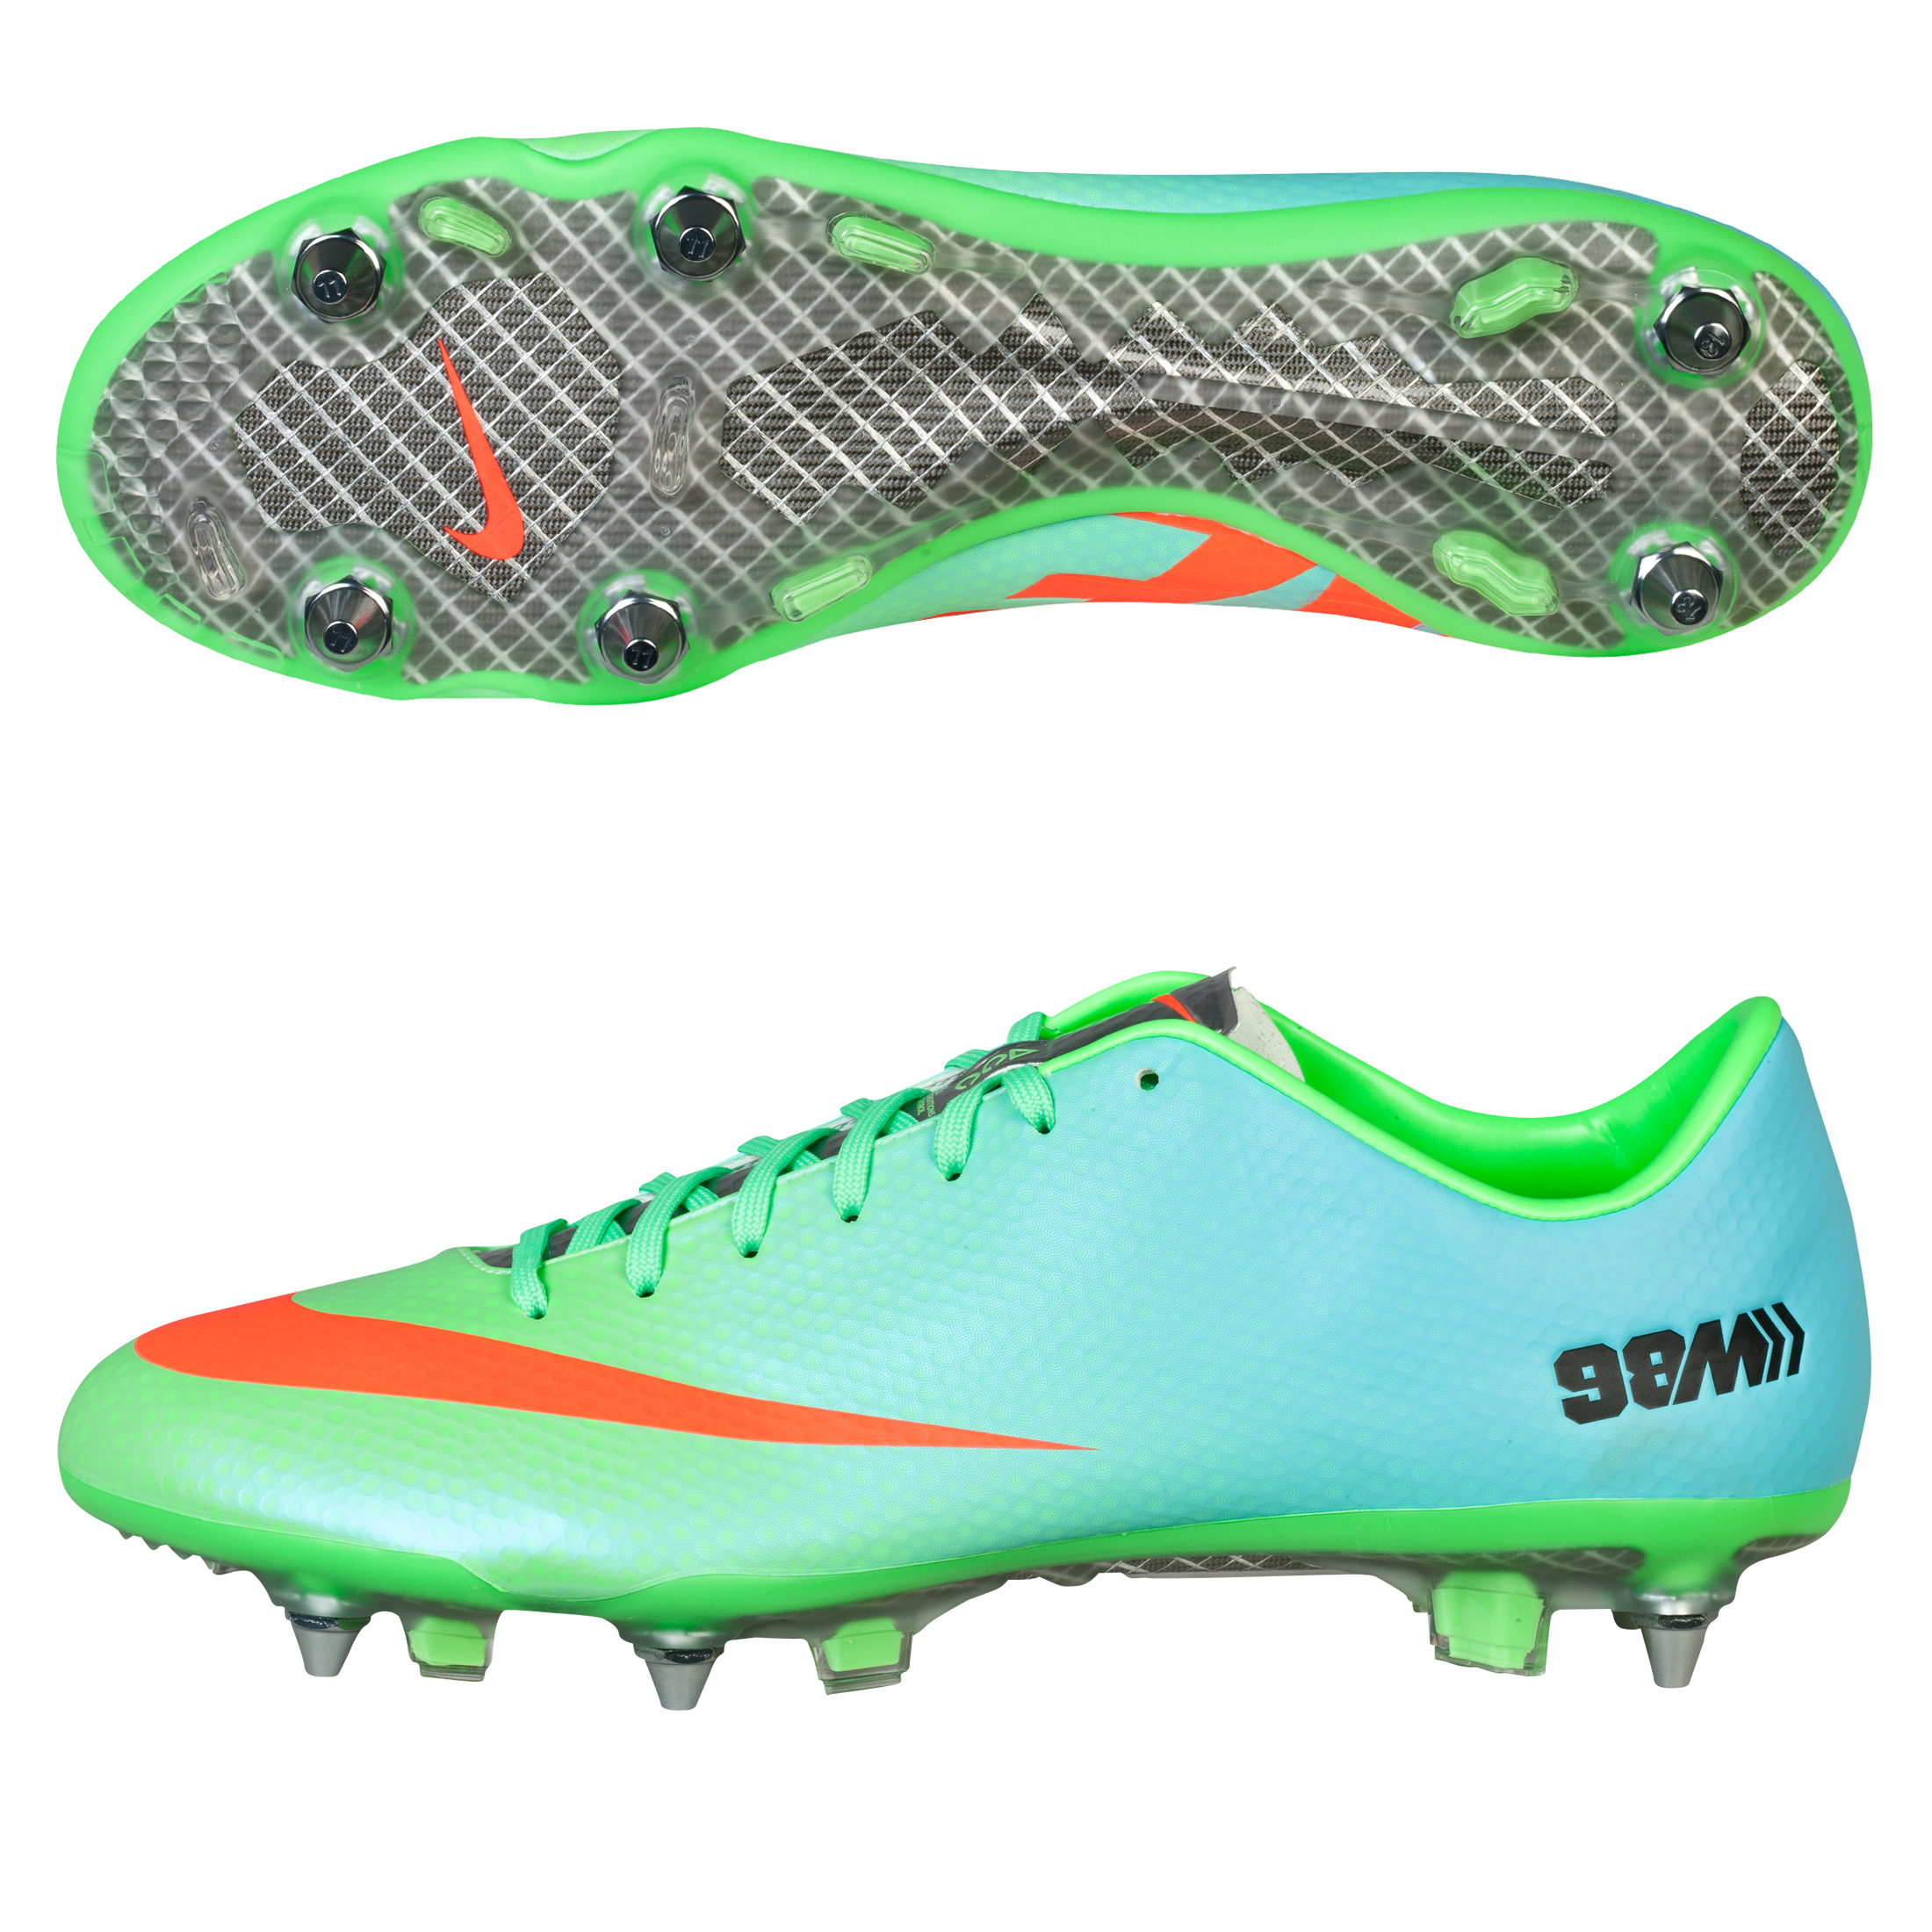 Nike Mercurial Vapor IX Soft Ground Pro Football Boots Green